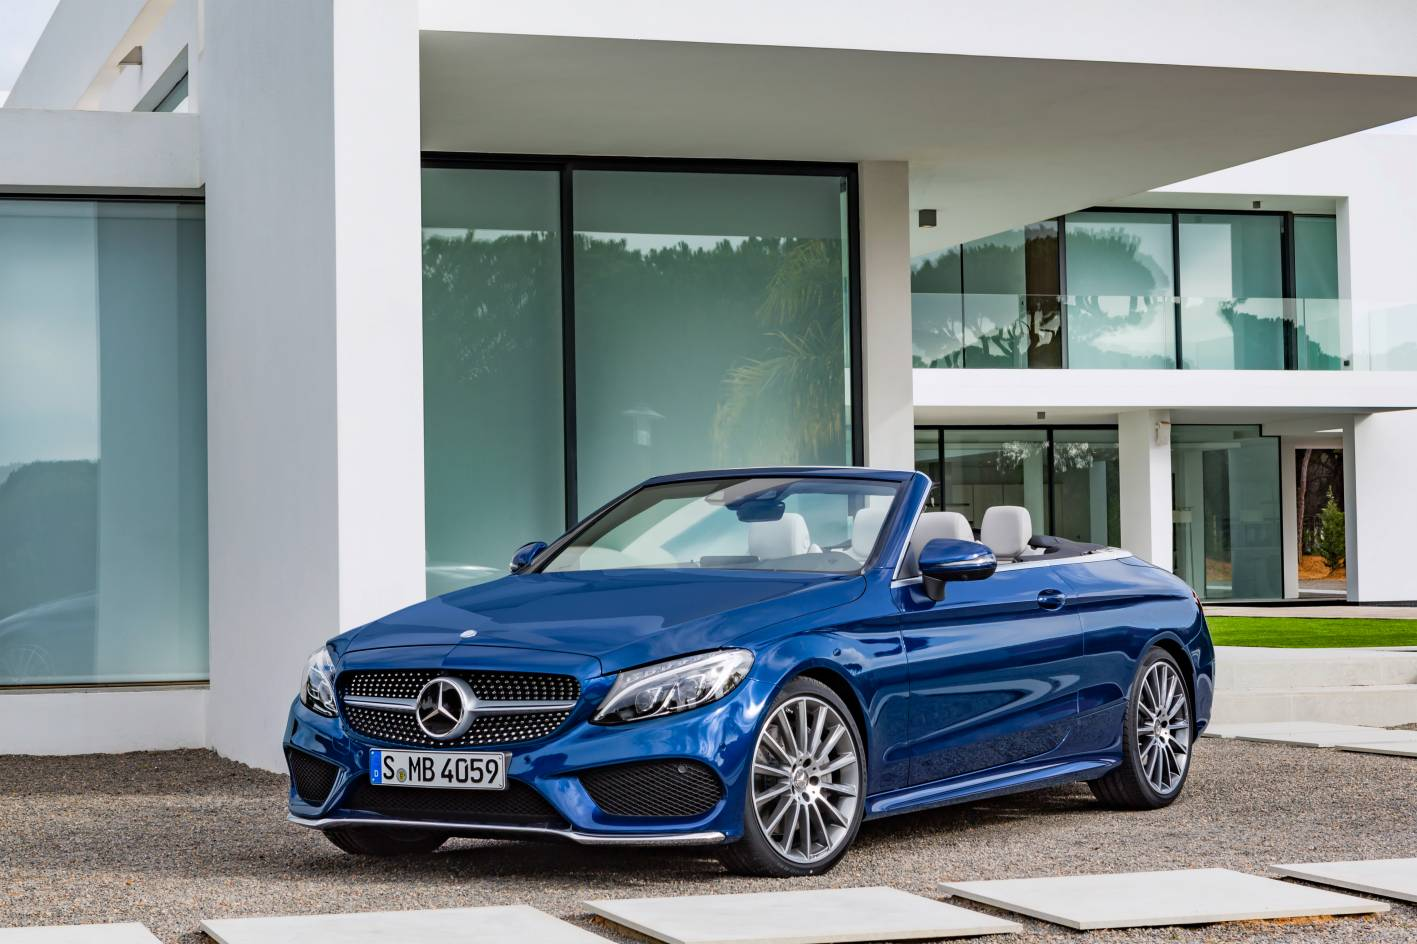 2017 Mercedes-Benz C-Class Cabriolet - Price And Features For Australia